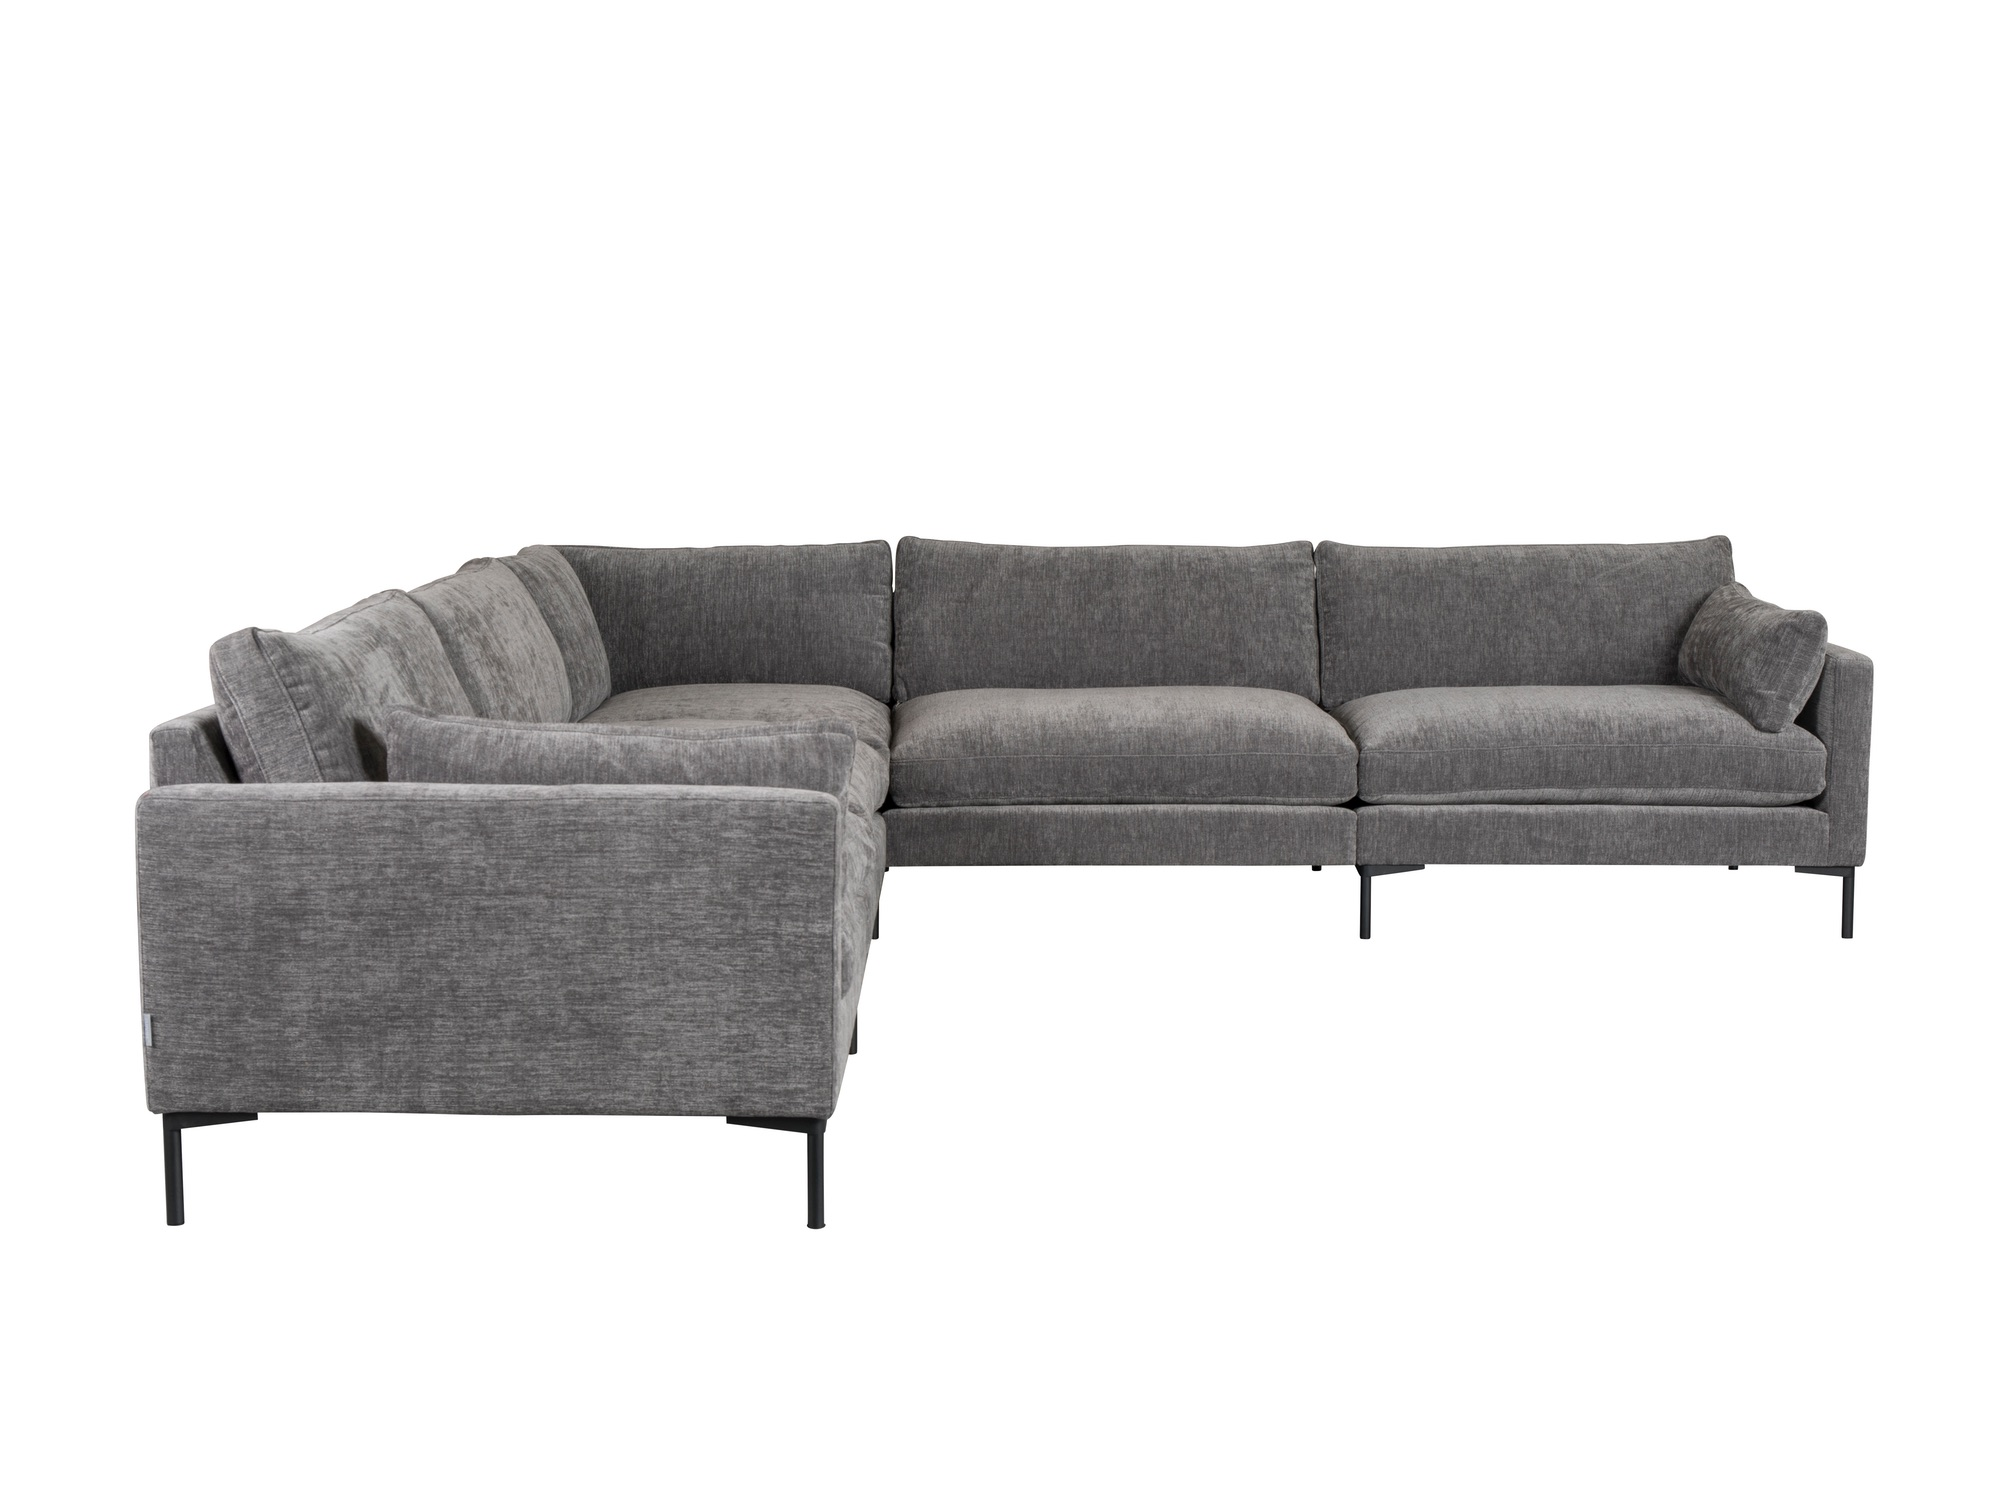 Zuiver Sofa Summer 7 Sitzer In Stoff Anthrazit Ecksofa